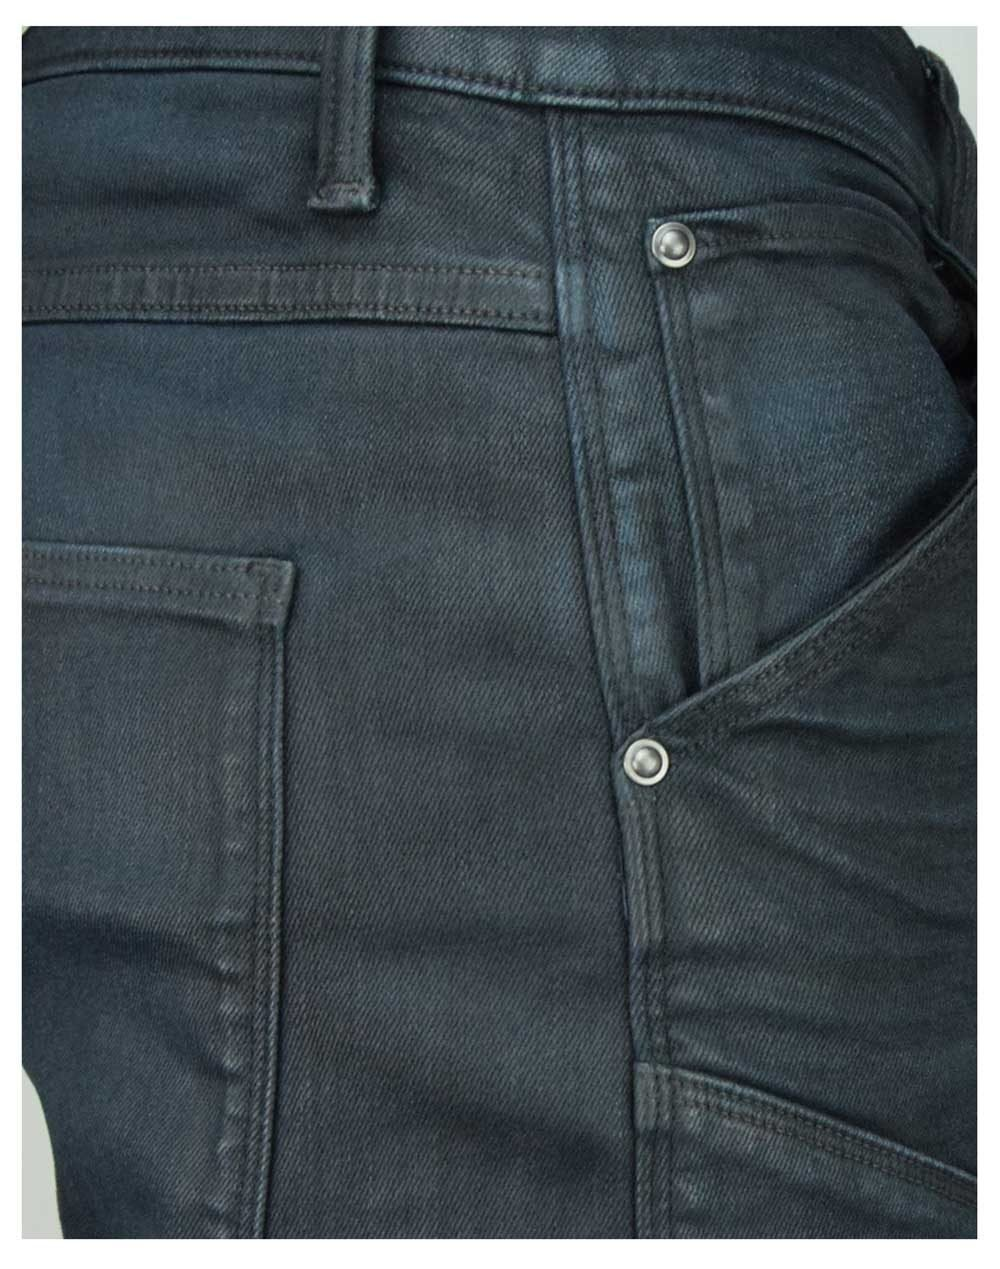 G-Star Raw 5620 3D Slim (51025-8968-A887) Dry Waxed Cobler